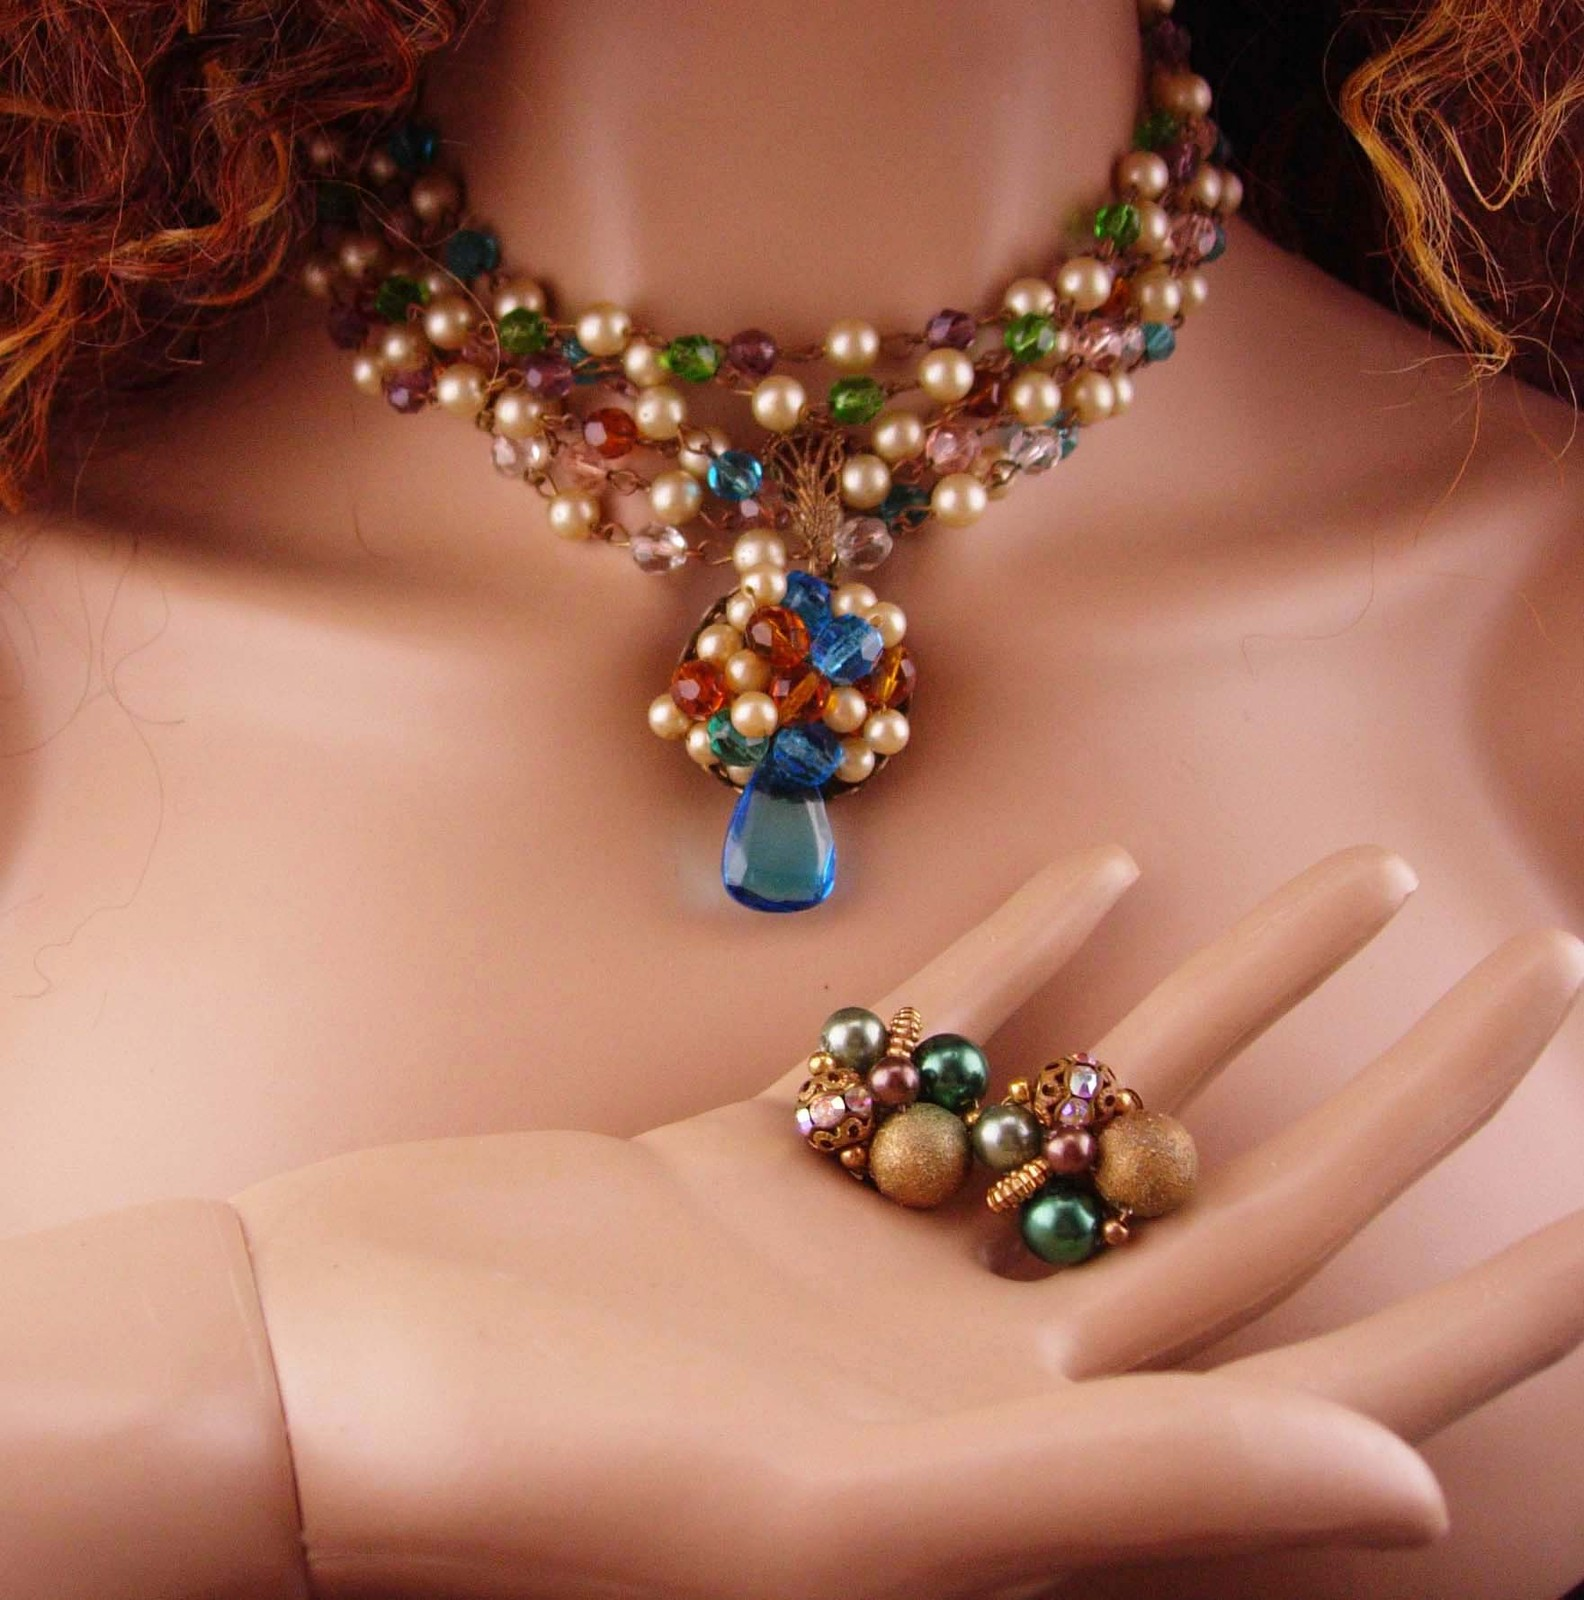 Haskellpearlnecklace2